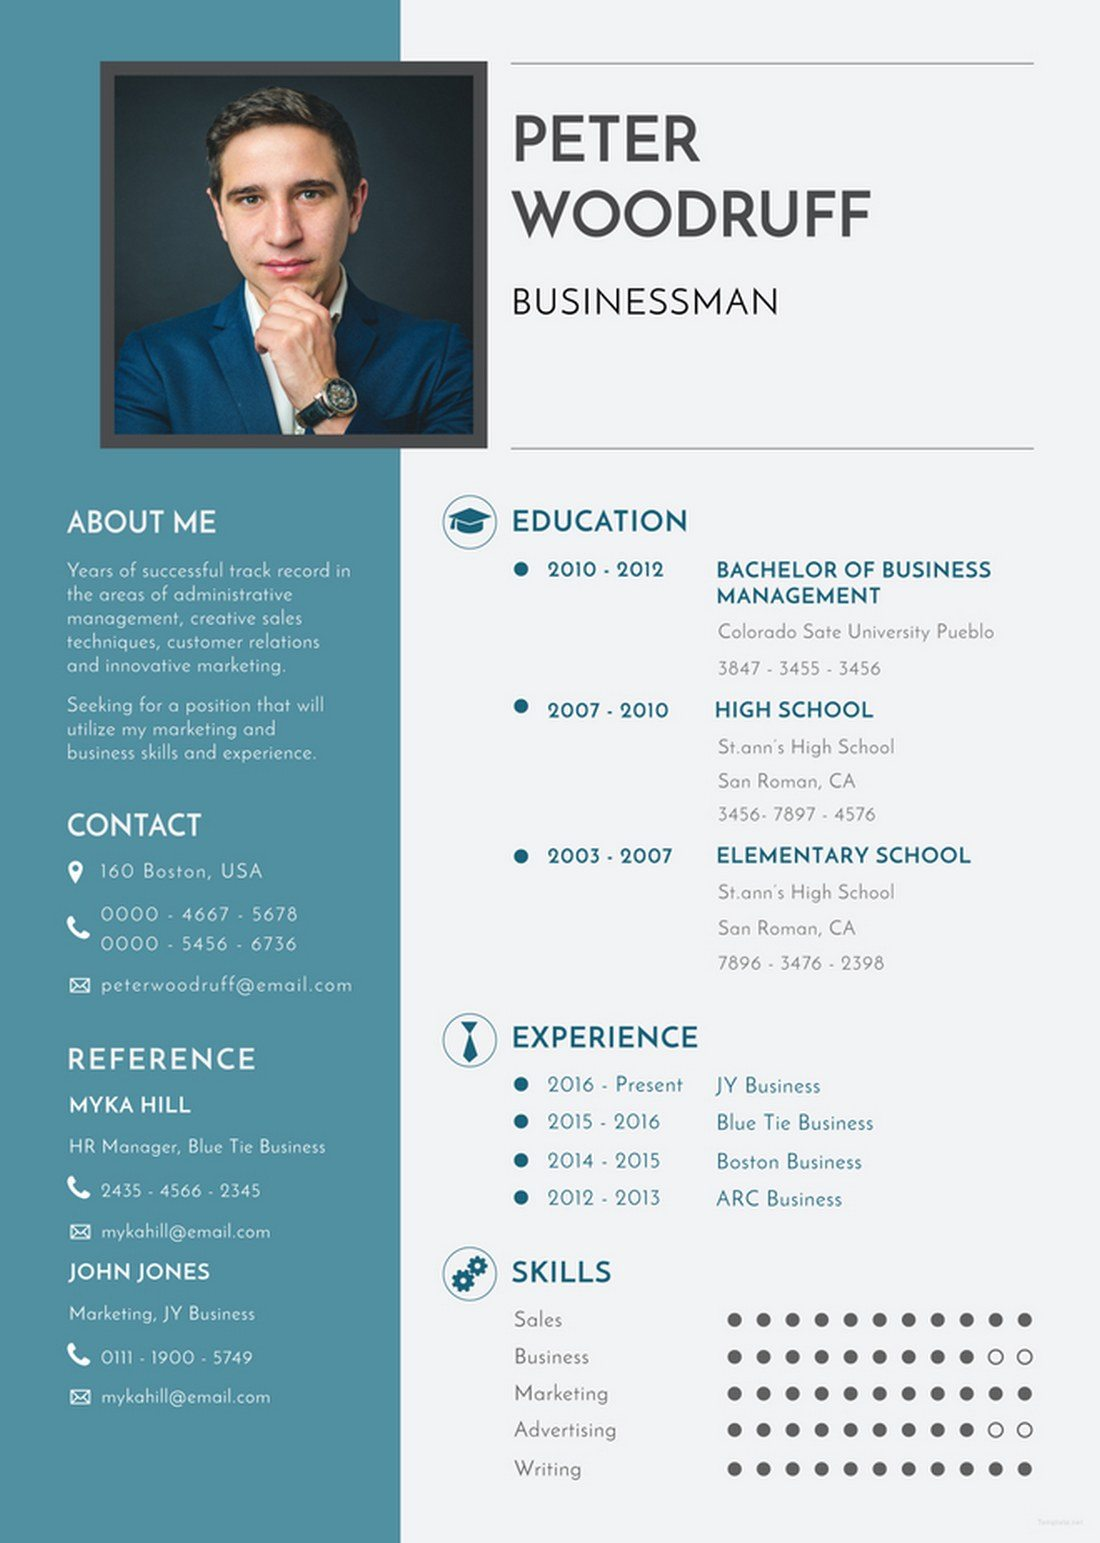 Free-Business-Resume-Template 20+ Best Pages Resume & CV Templates design tips